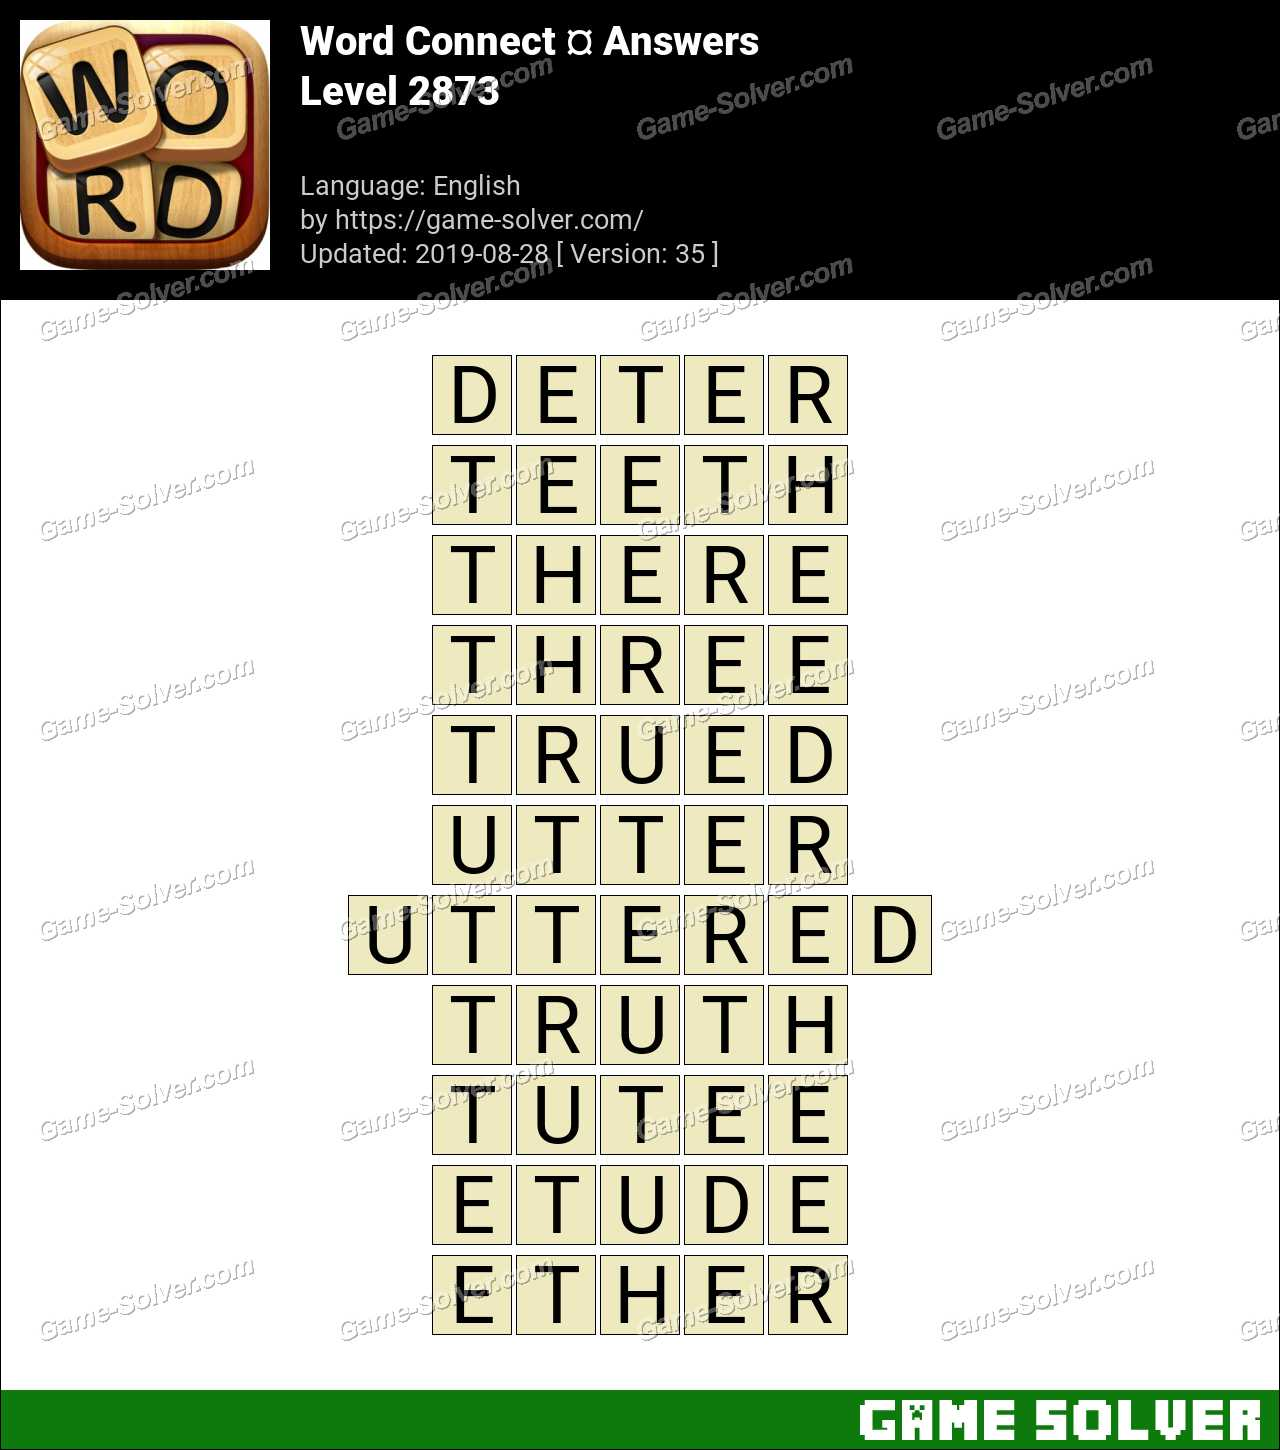 Word Connect Level 2873 Answers